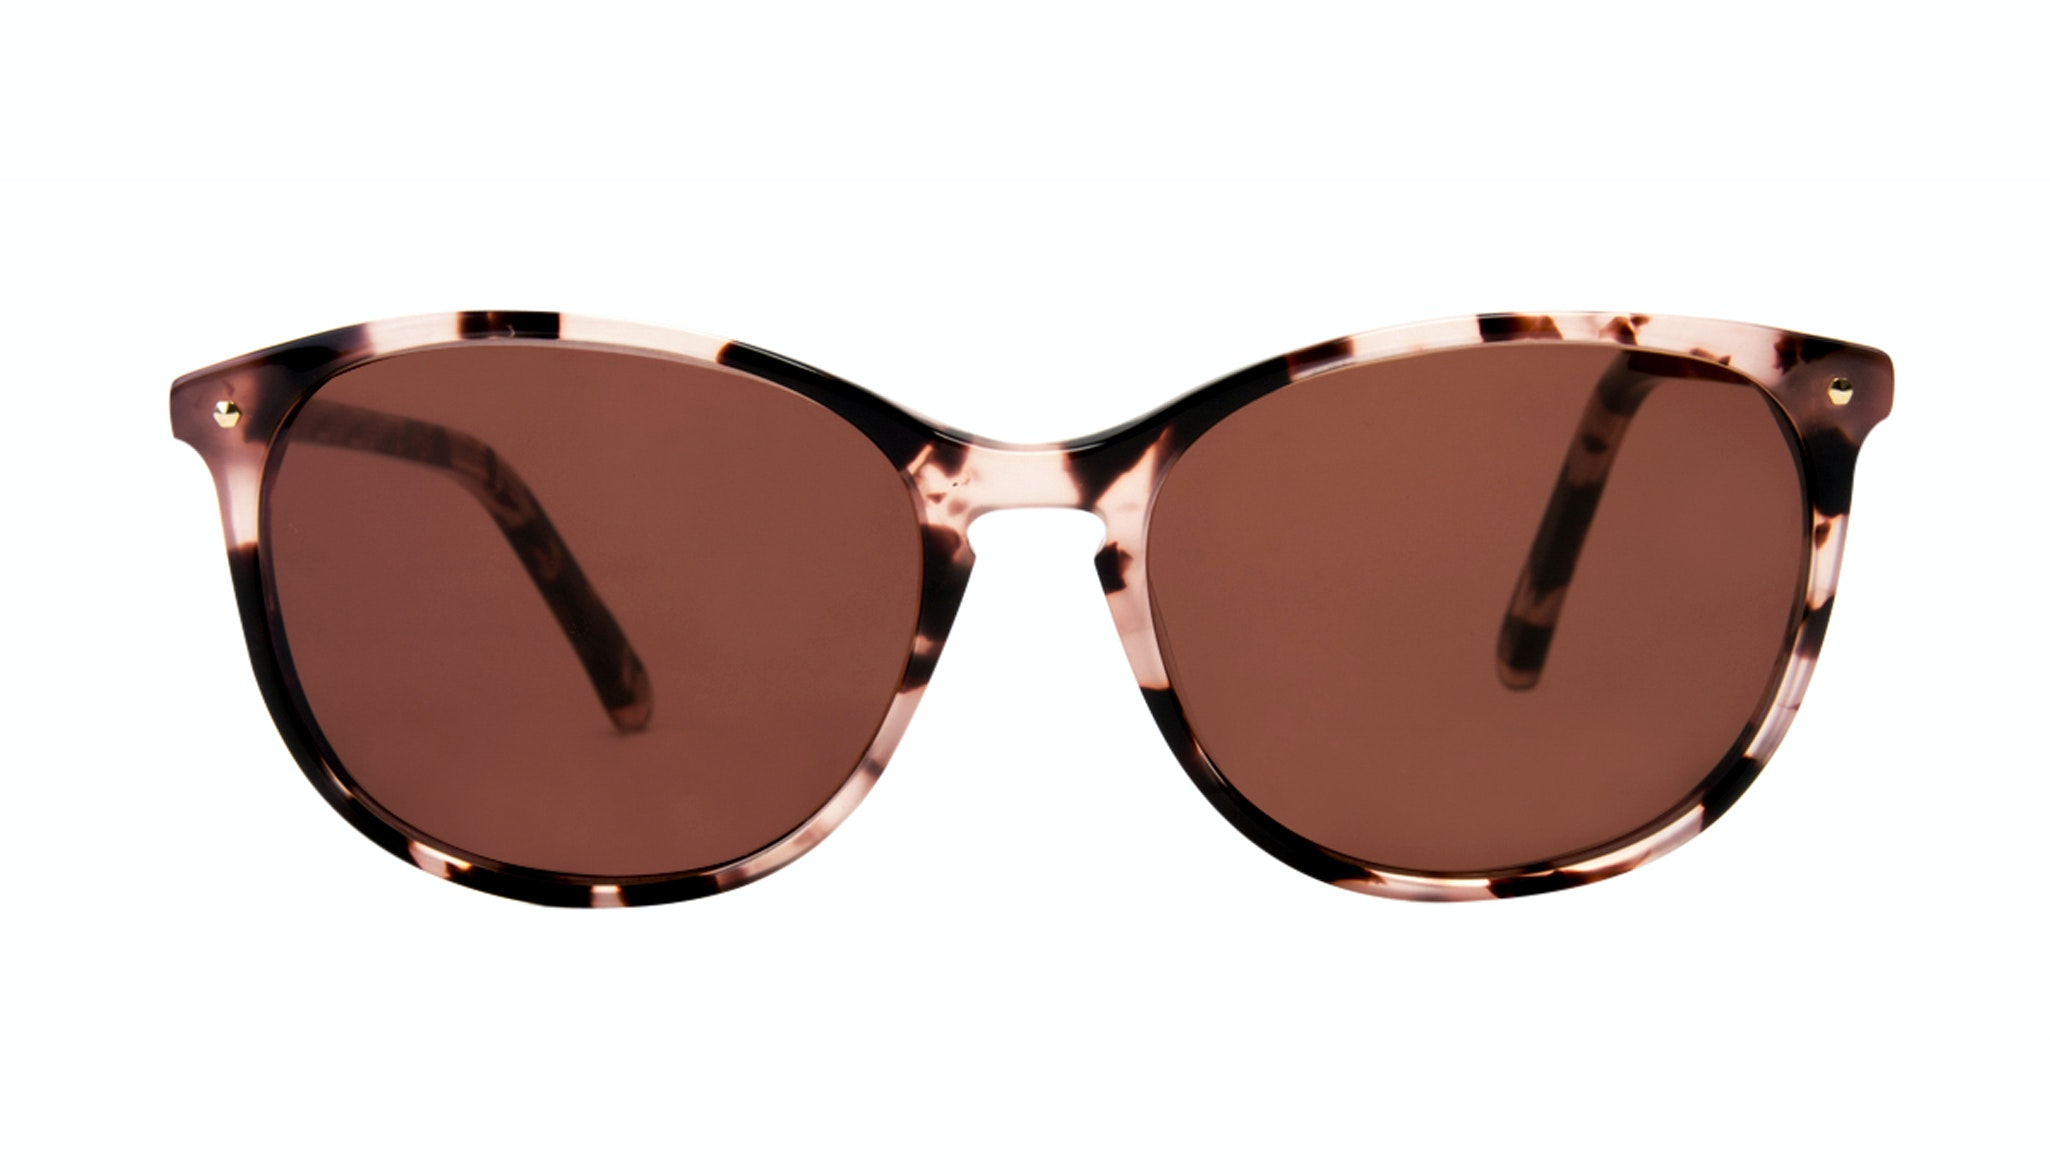 Affordable Fashion Glasses Rectangle Square Round Sunglasses Women Nadine Pink Tortoise